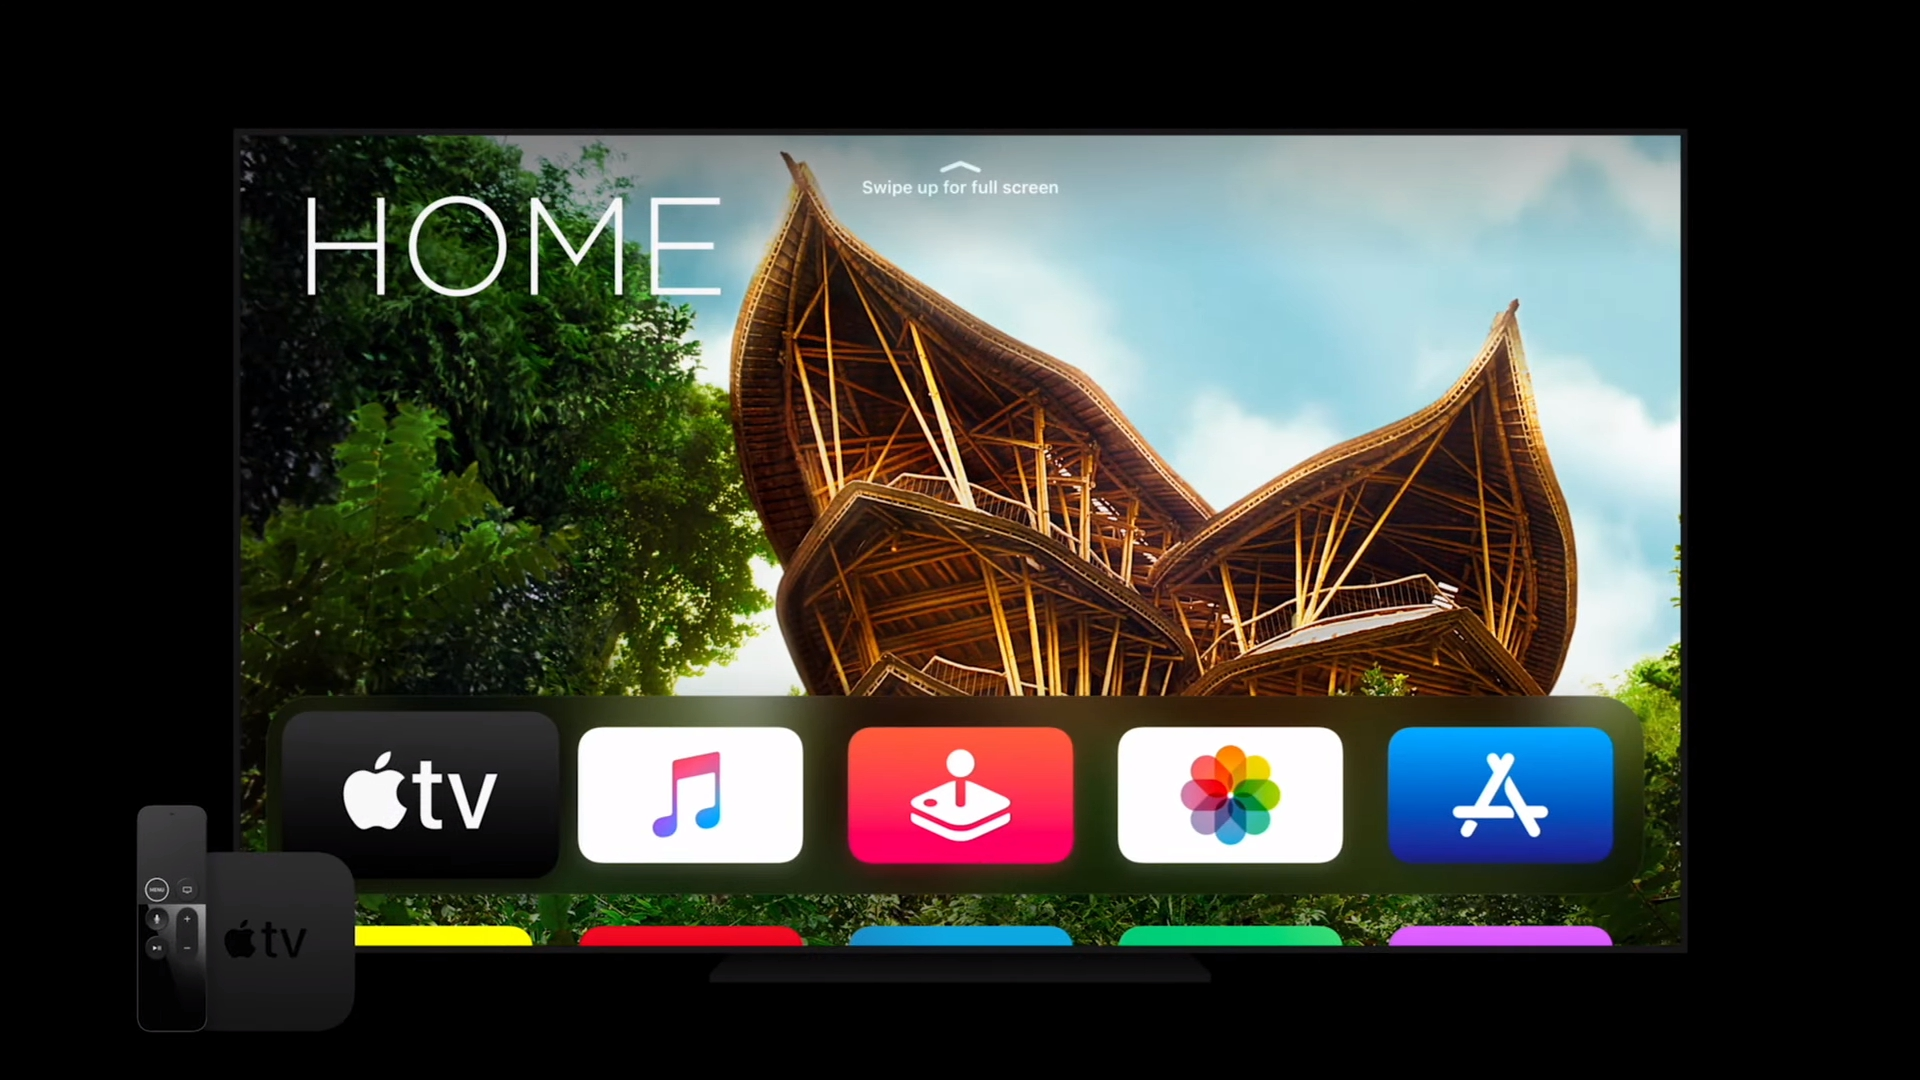 TvOS 14 Compatibility List – Does My Apple TV Support tvOS 14?